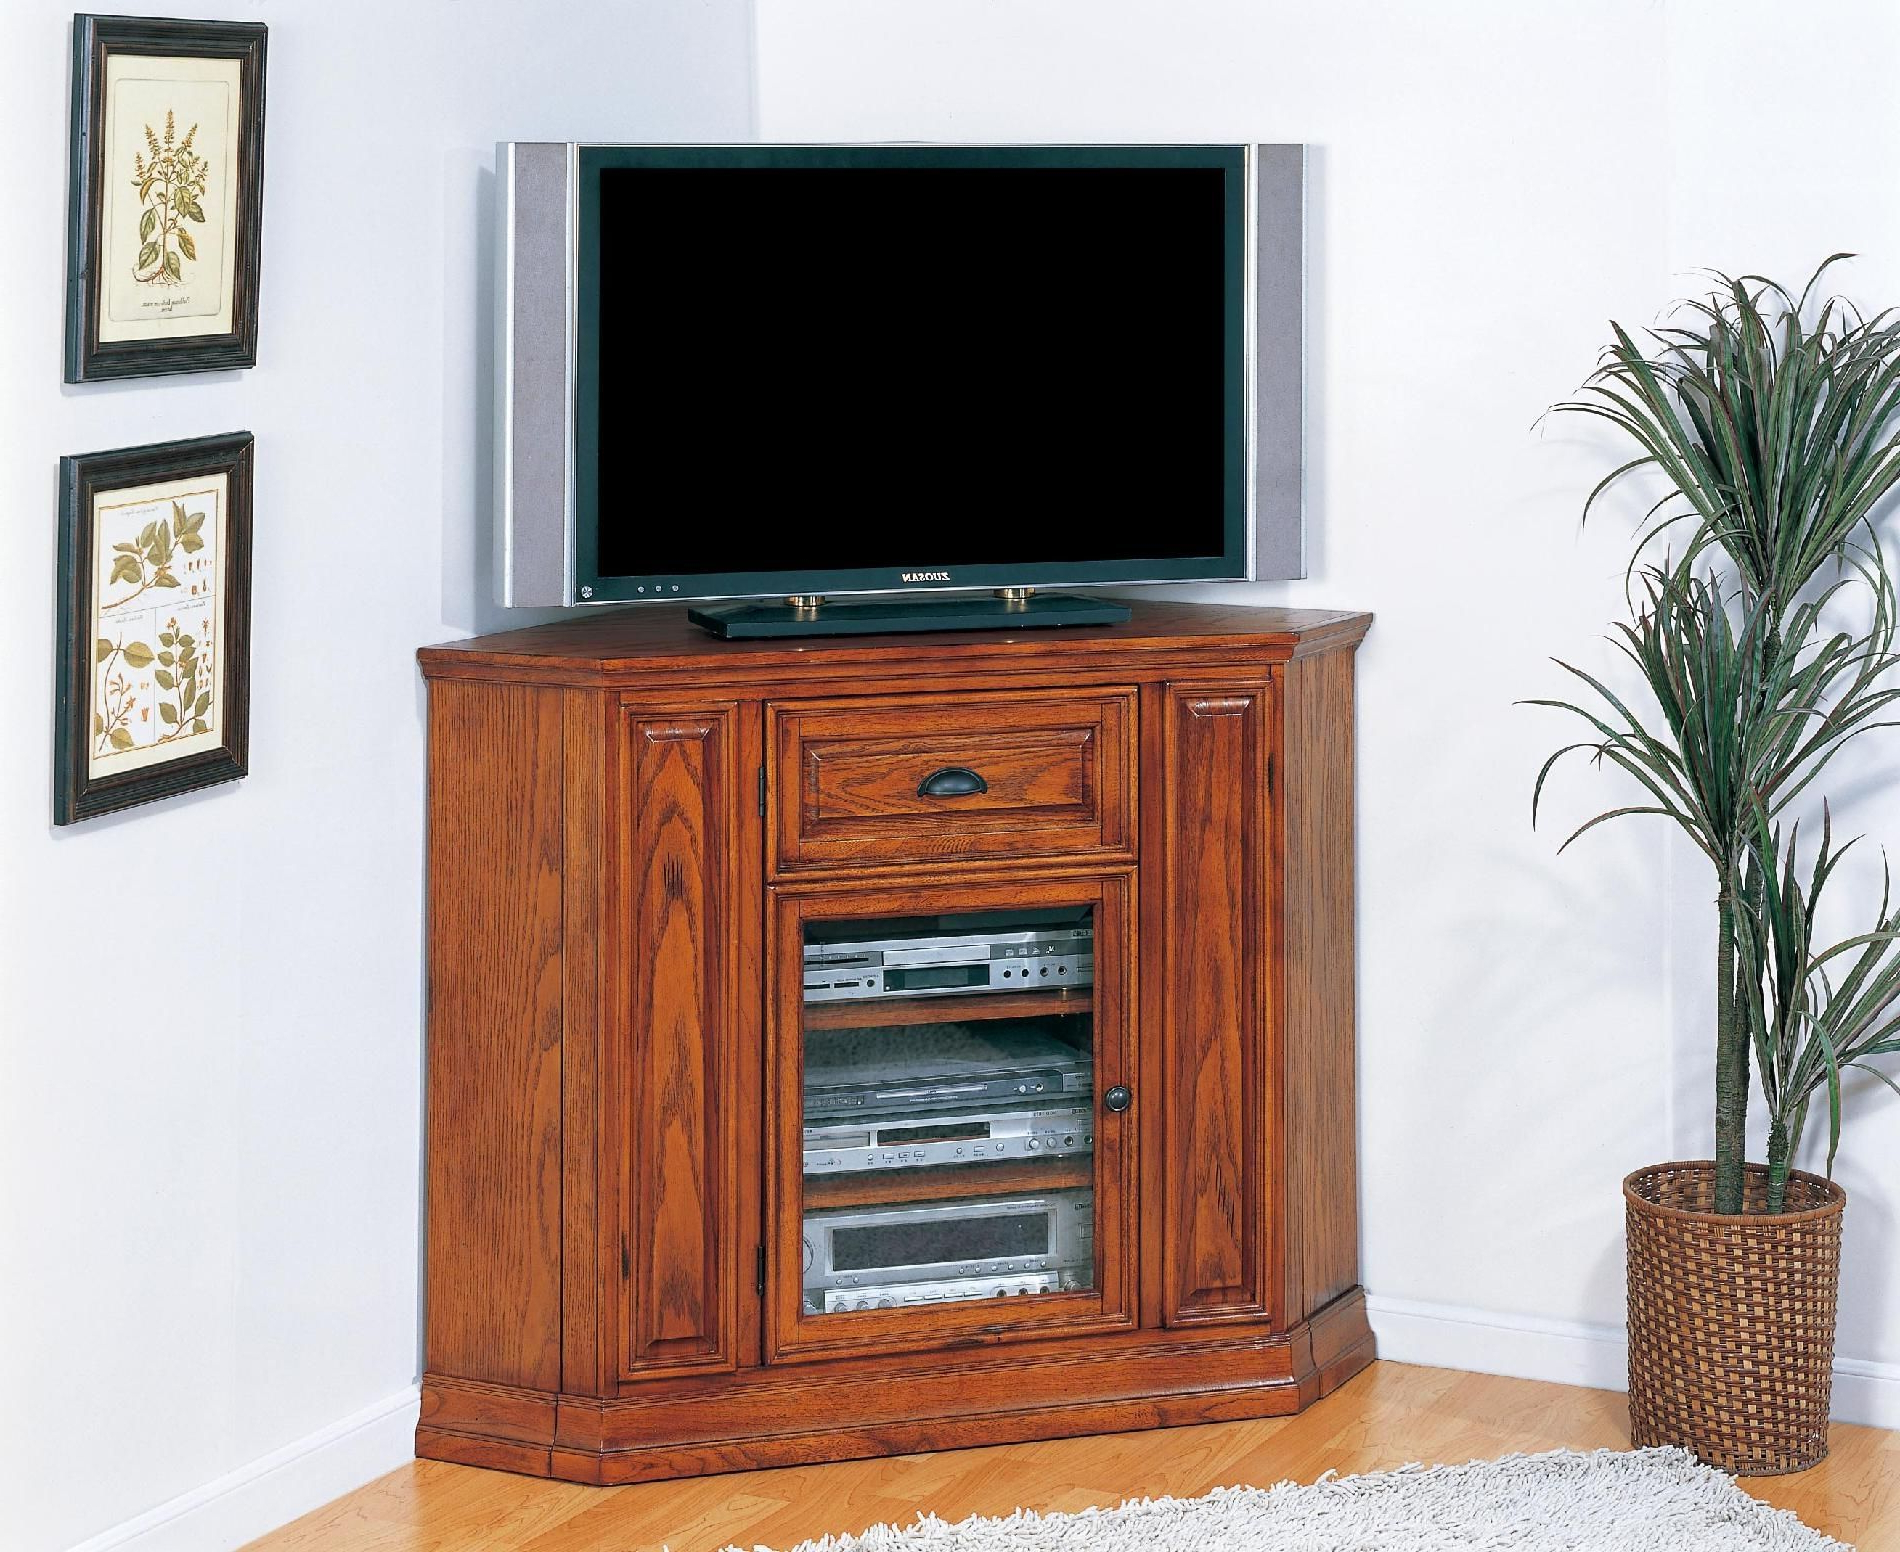 Oak Tv Cabinets For Flat Screens With Doors For 2018 Tall Corner Tv Cabinet With Doors (View 5 of 20)